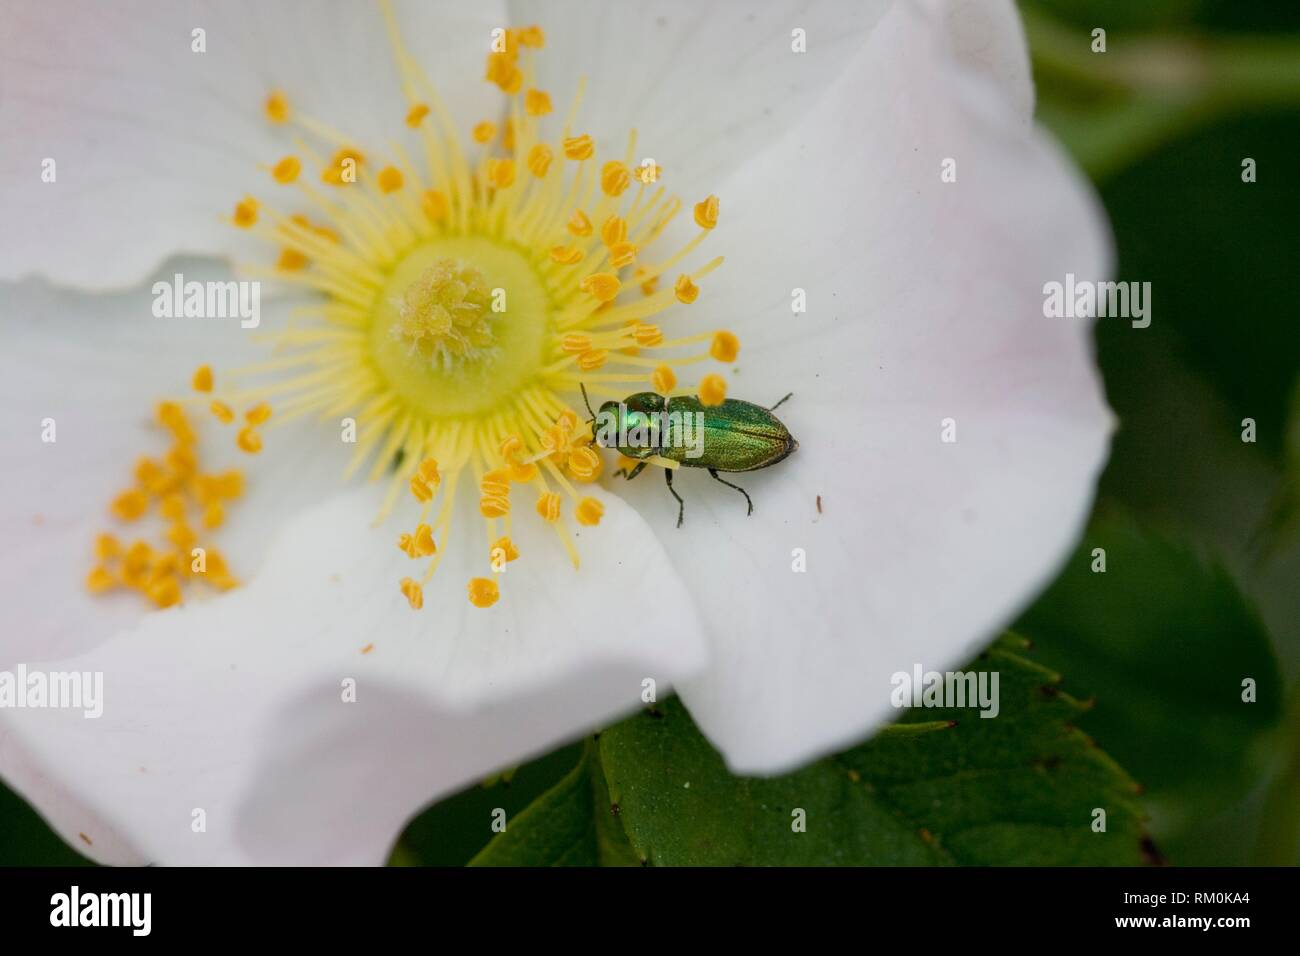 Jewel Beetle, Anthaxia fulgurans on a dogrose. - Stock Image